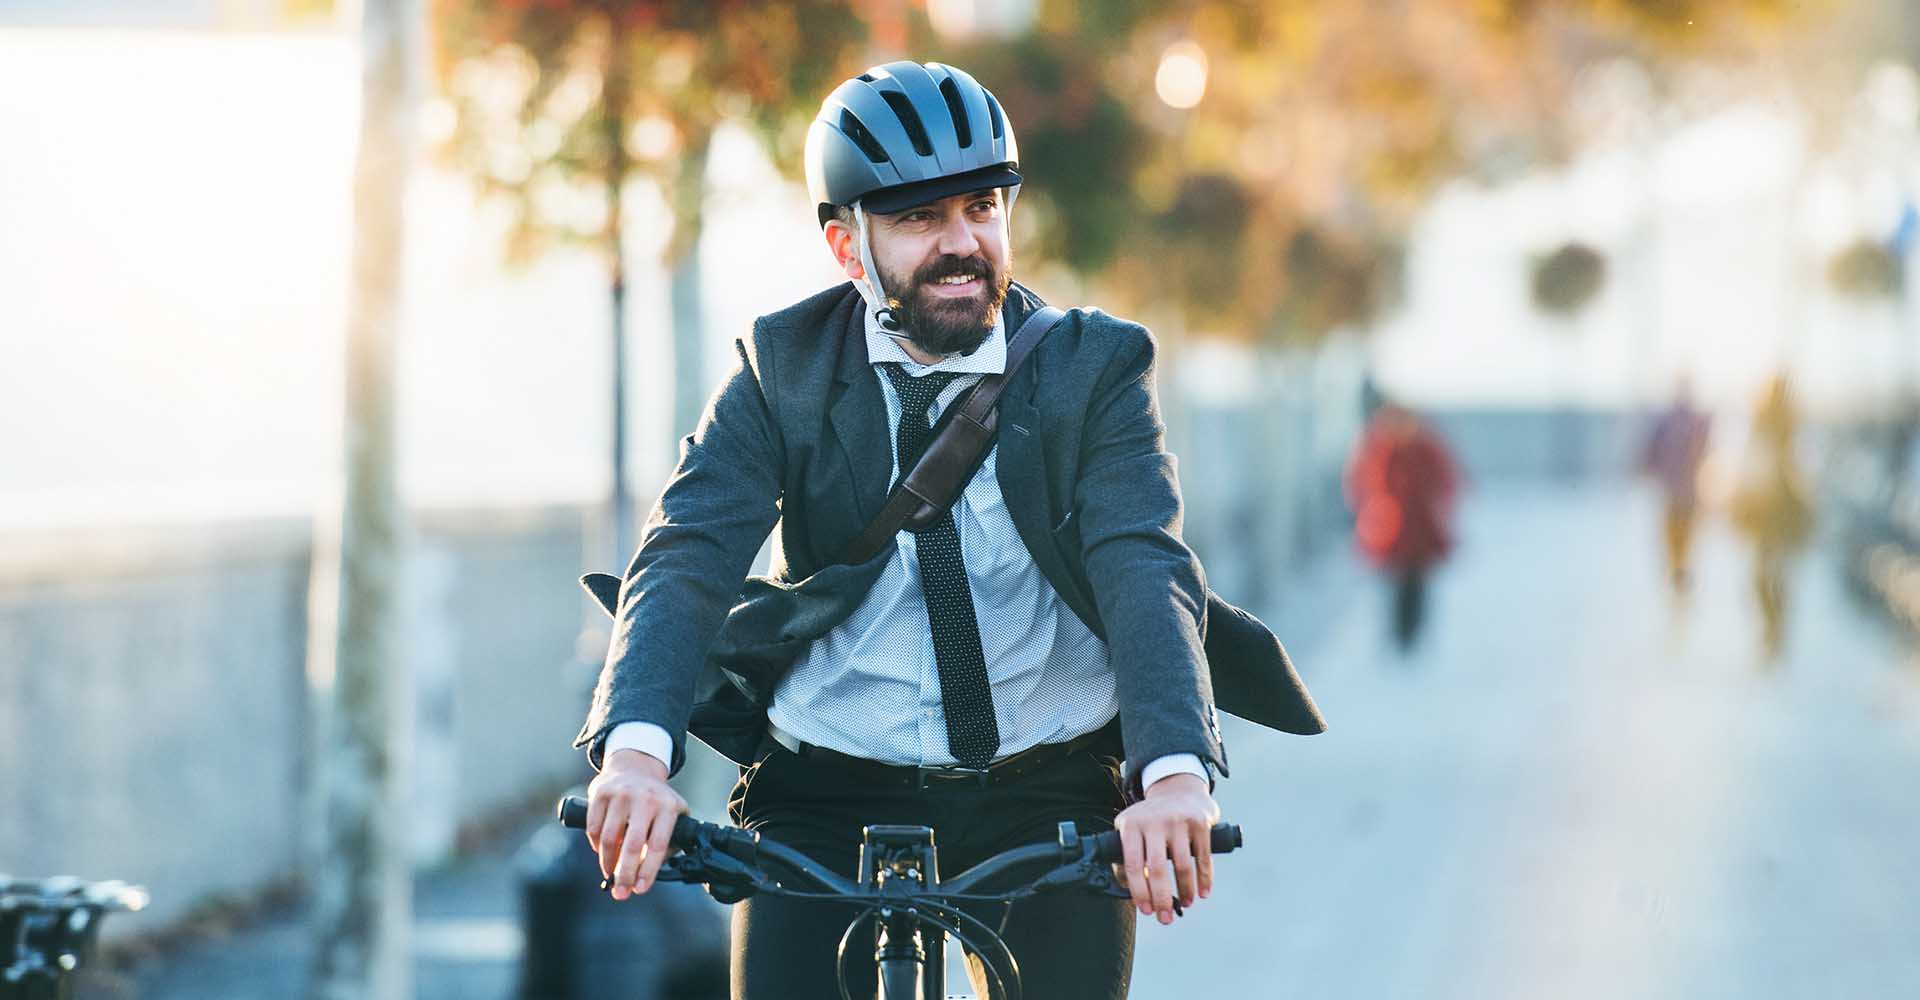 Hipster businessman commuter with electric bicycle traveling home from work in the city.